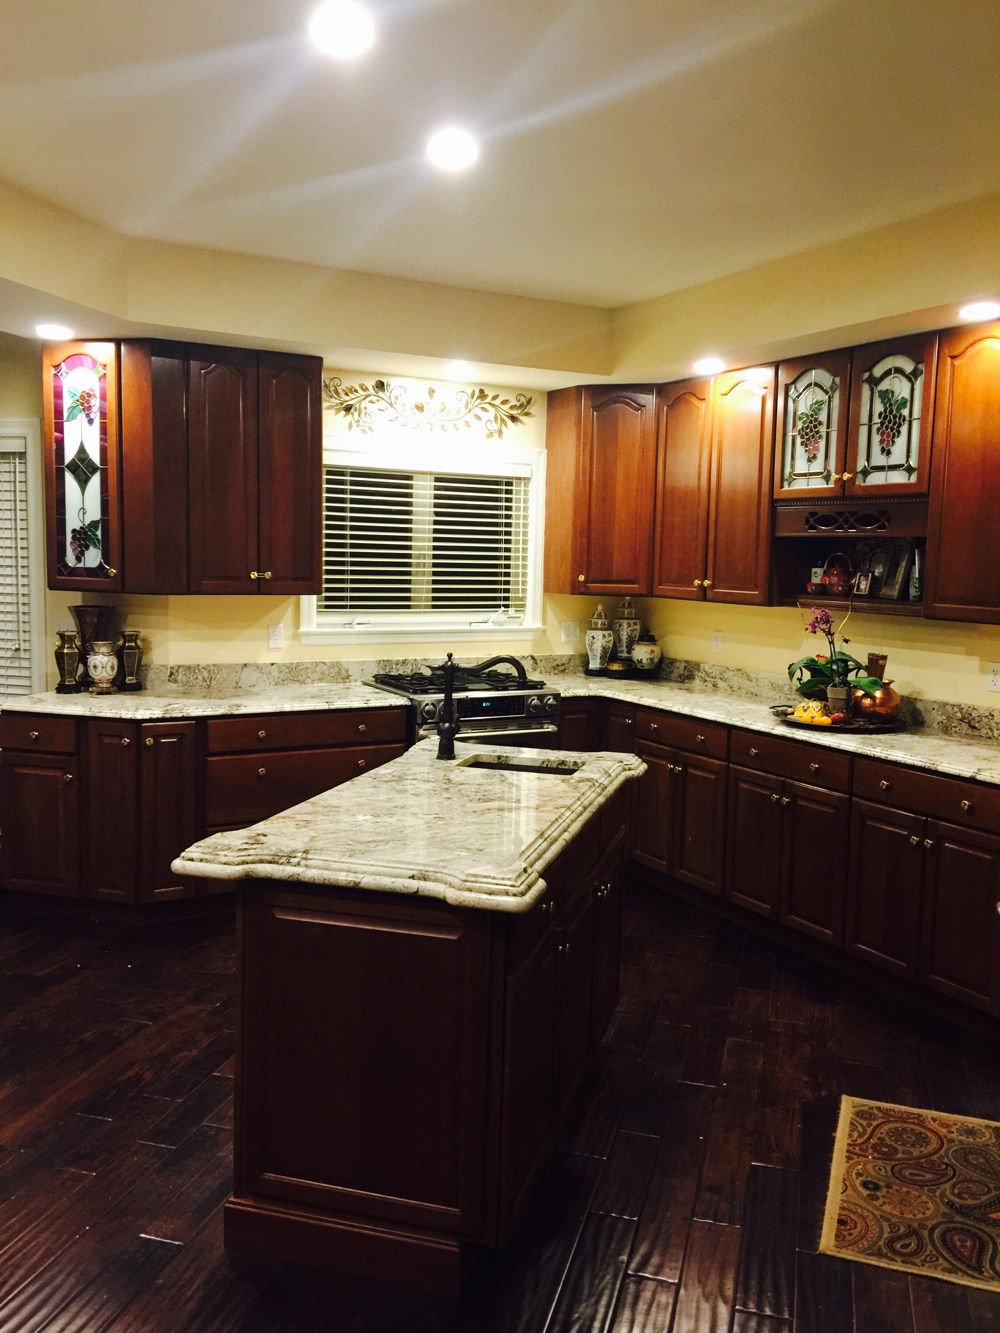 Installing A Countertop Installing Granite Or Cabinet Refacing Which Comes First